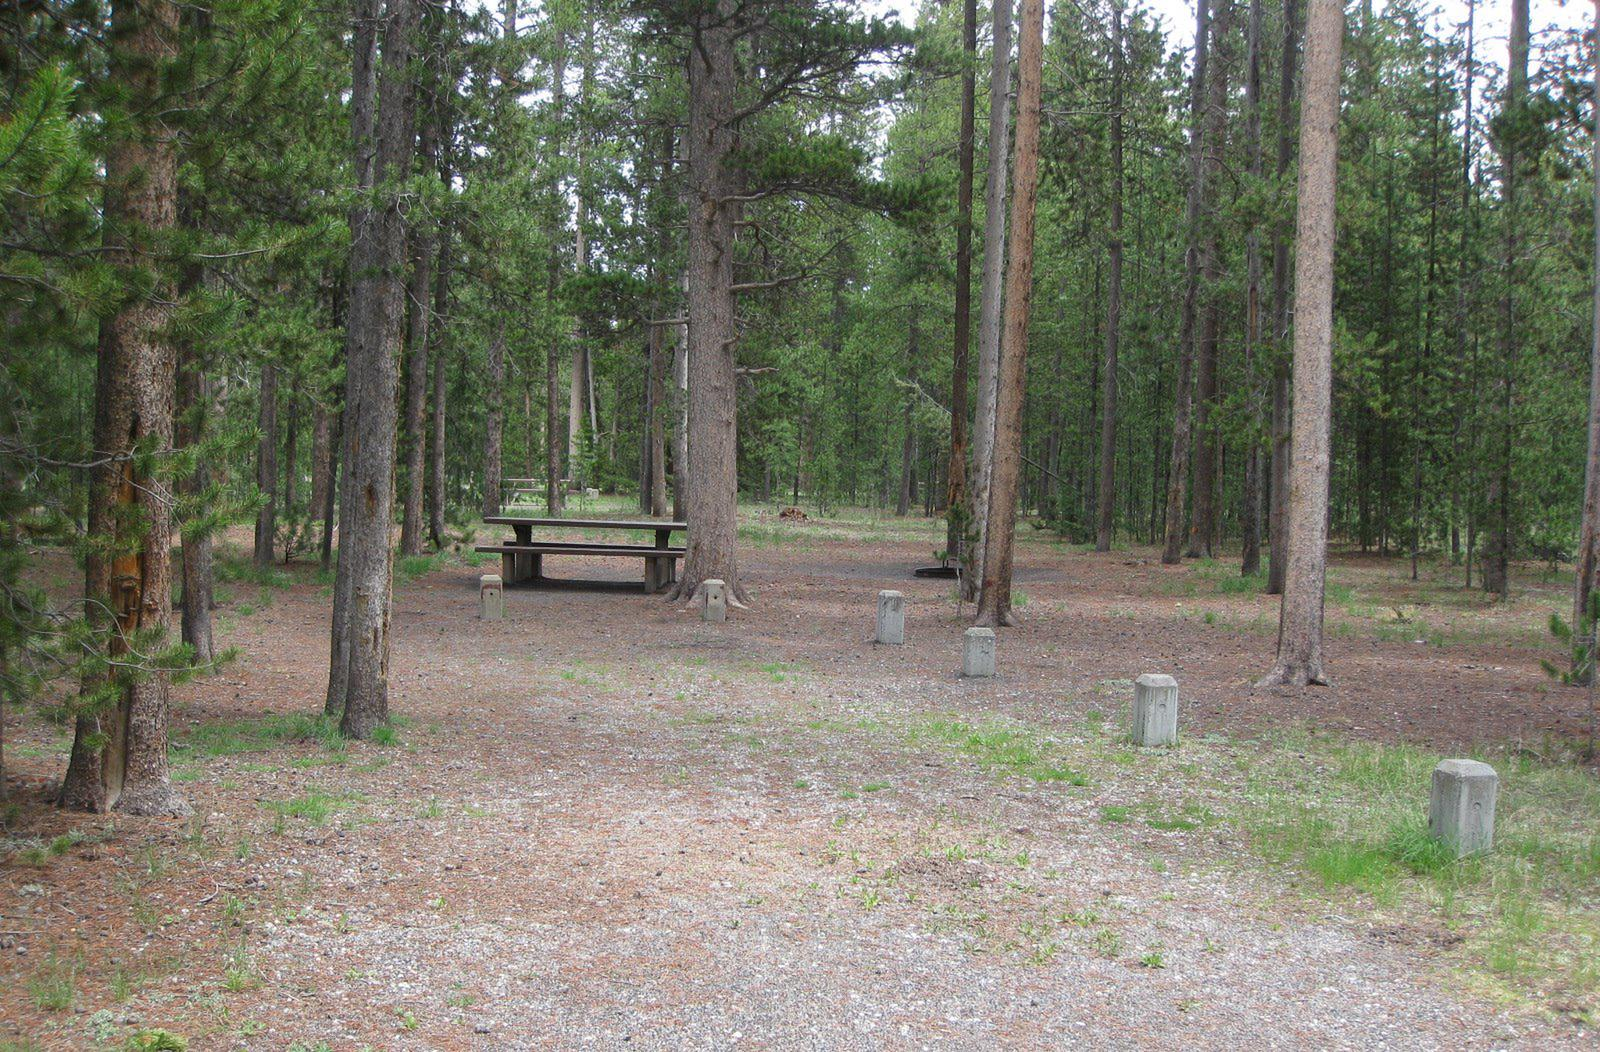 Site A4, surrounded by pine trees, picnic table & fire ringSite A4